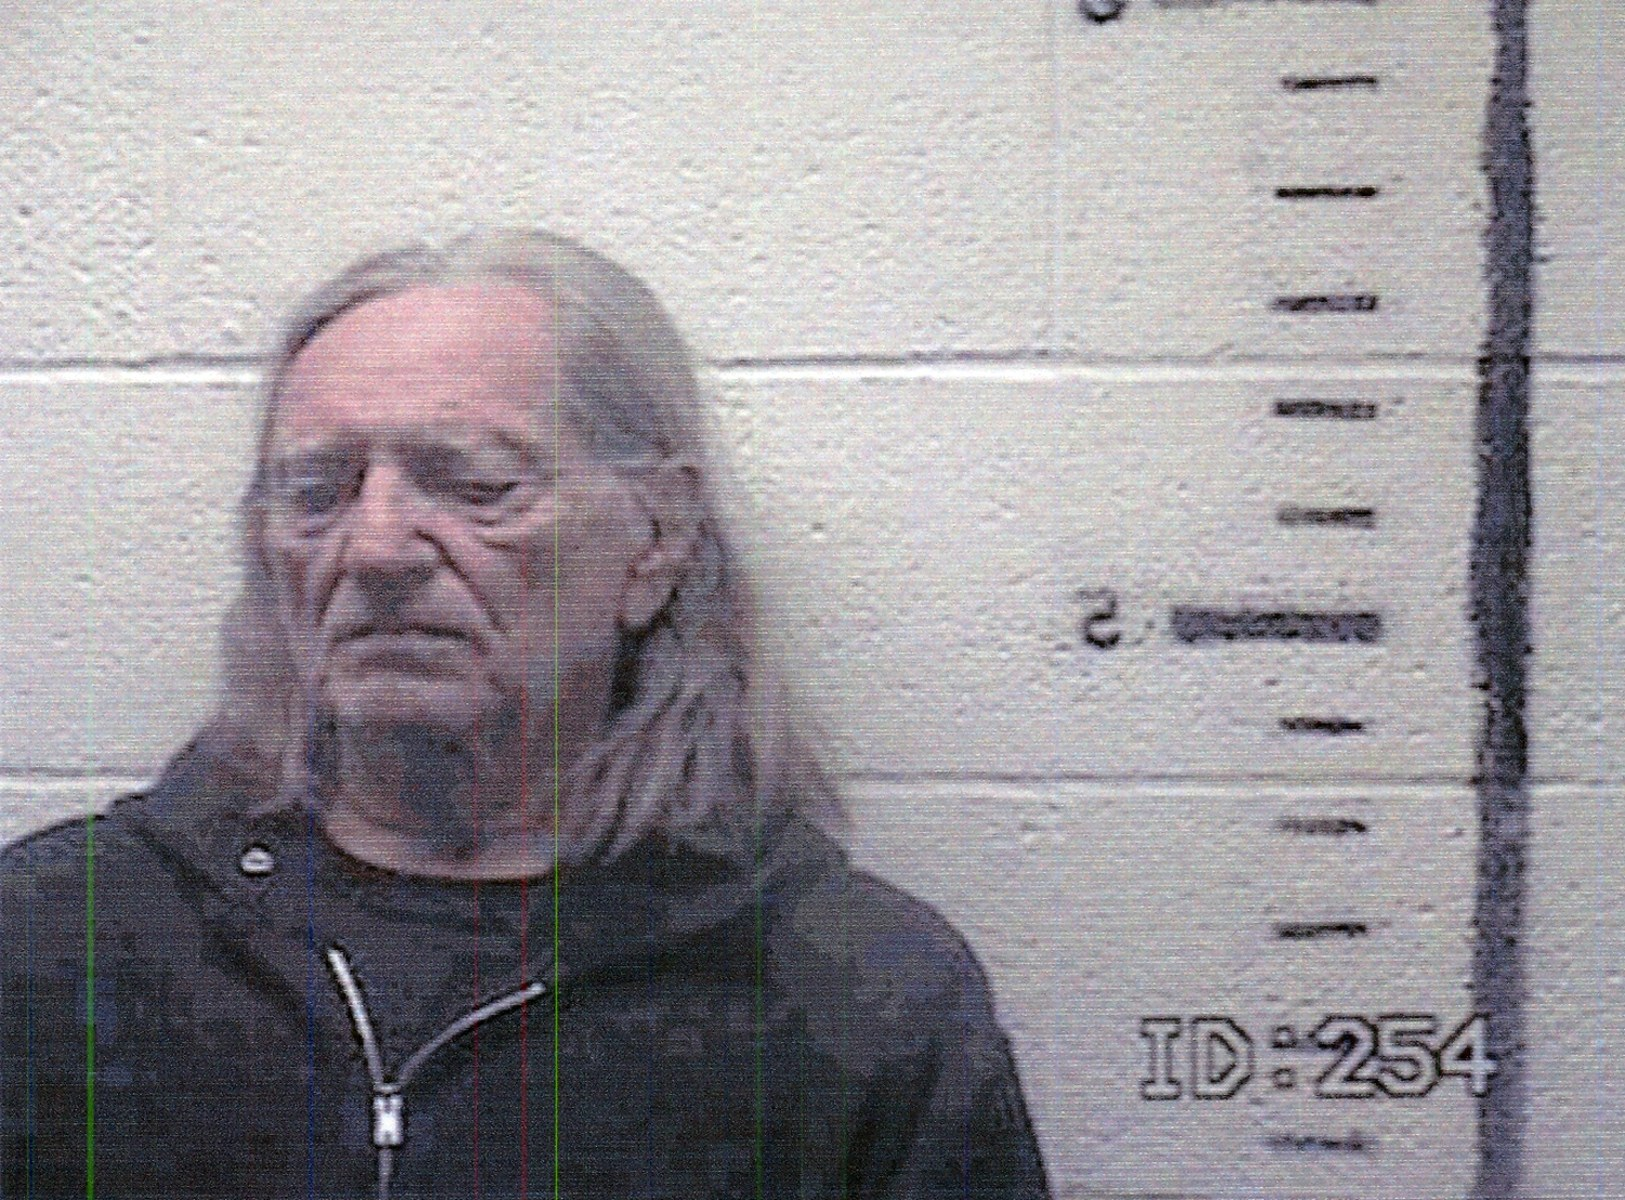 Willie Nelson Arrested For Possession Apps Directories